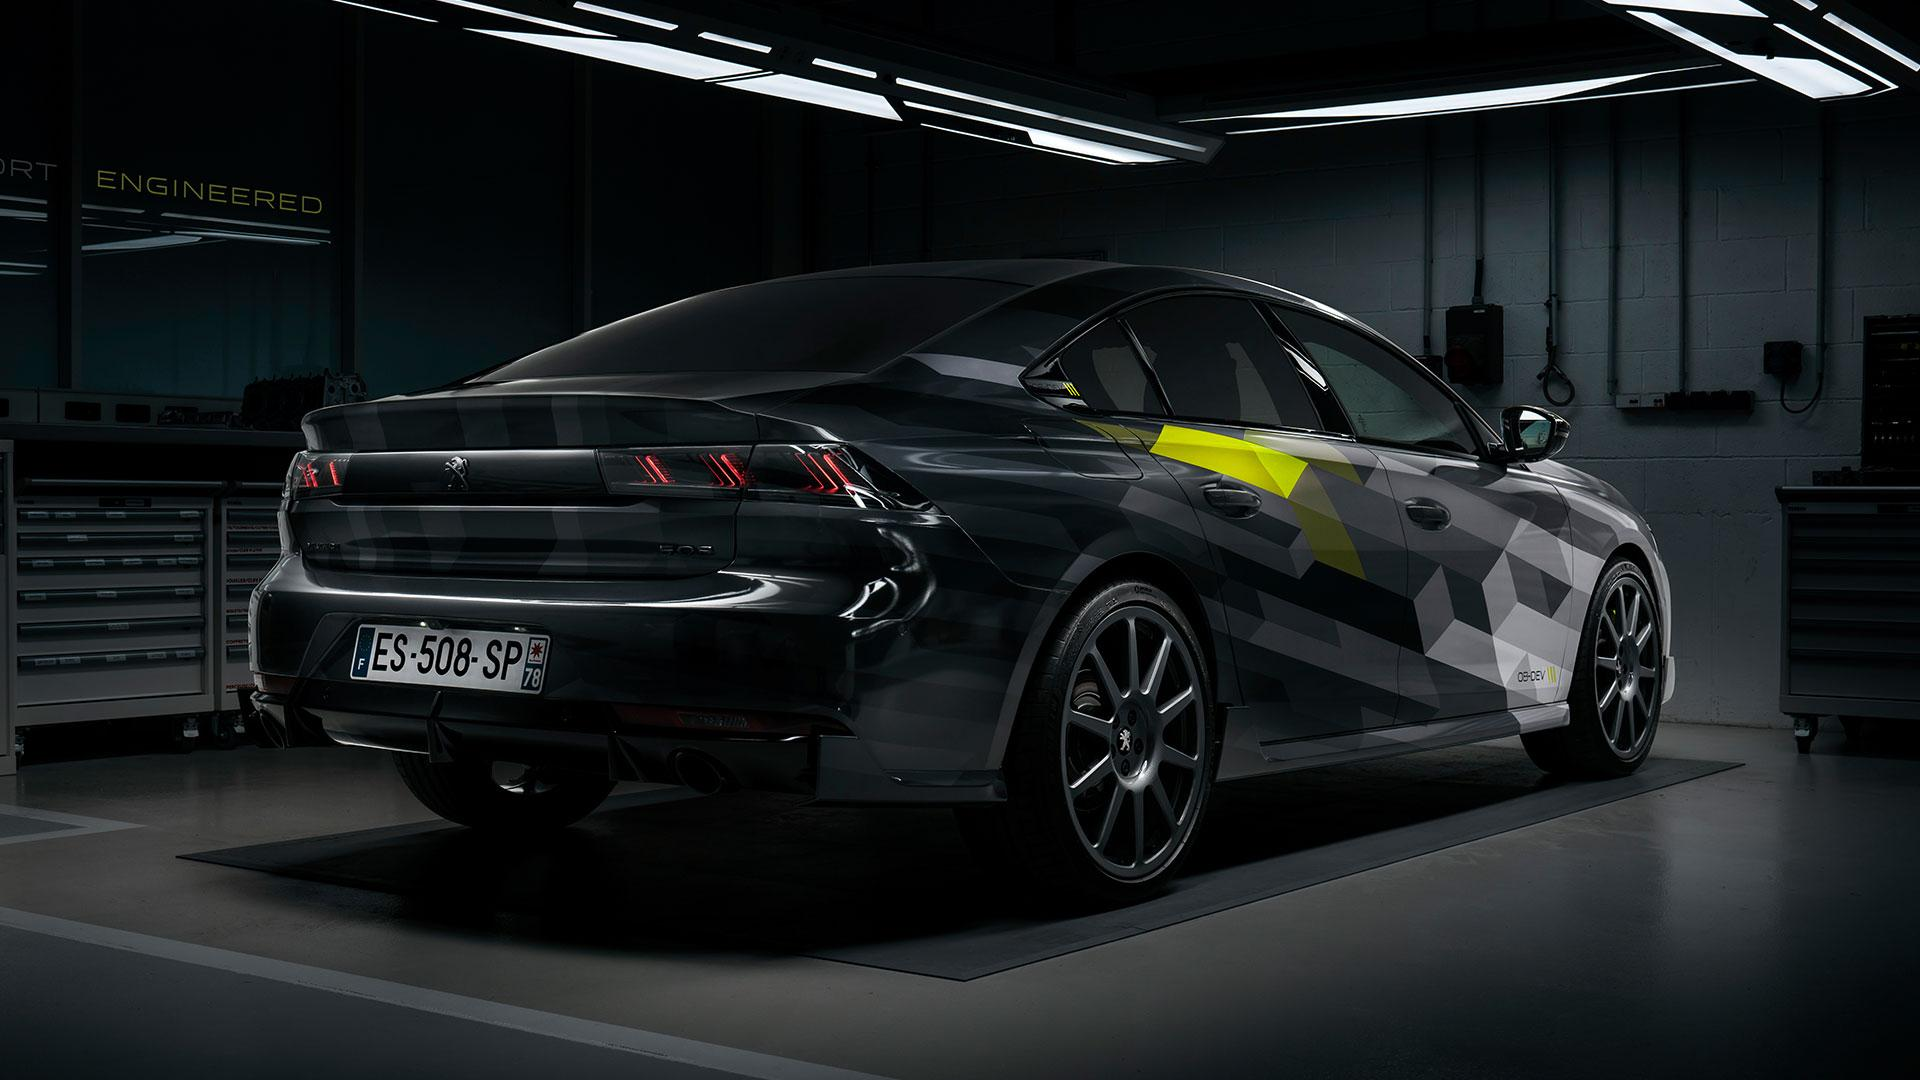 Peugeot 508 Sport Engineered in pitbox of garage